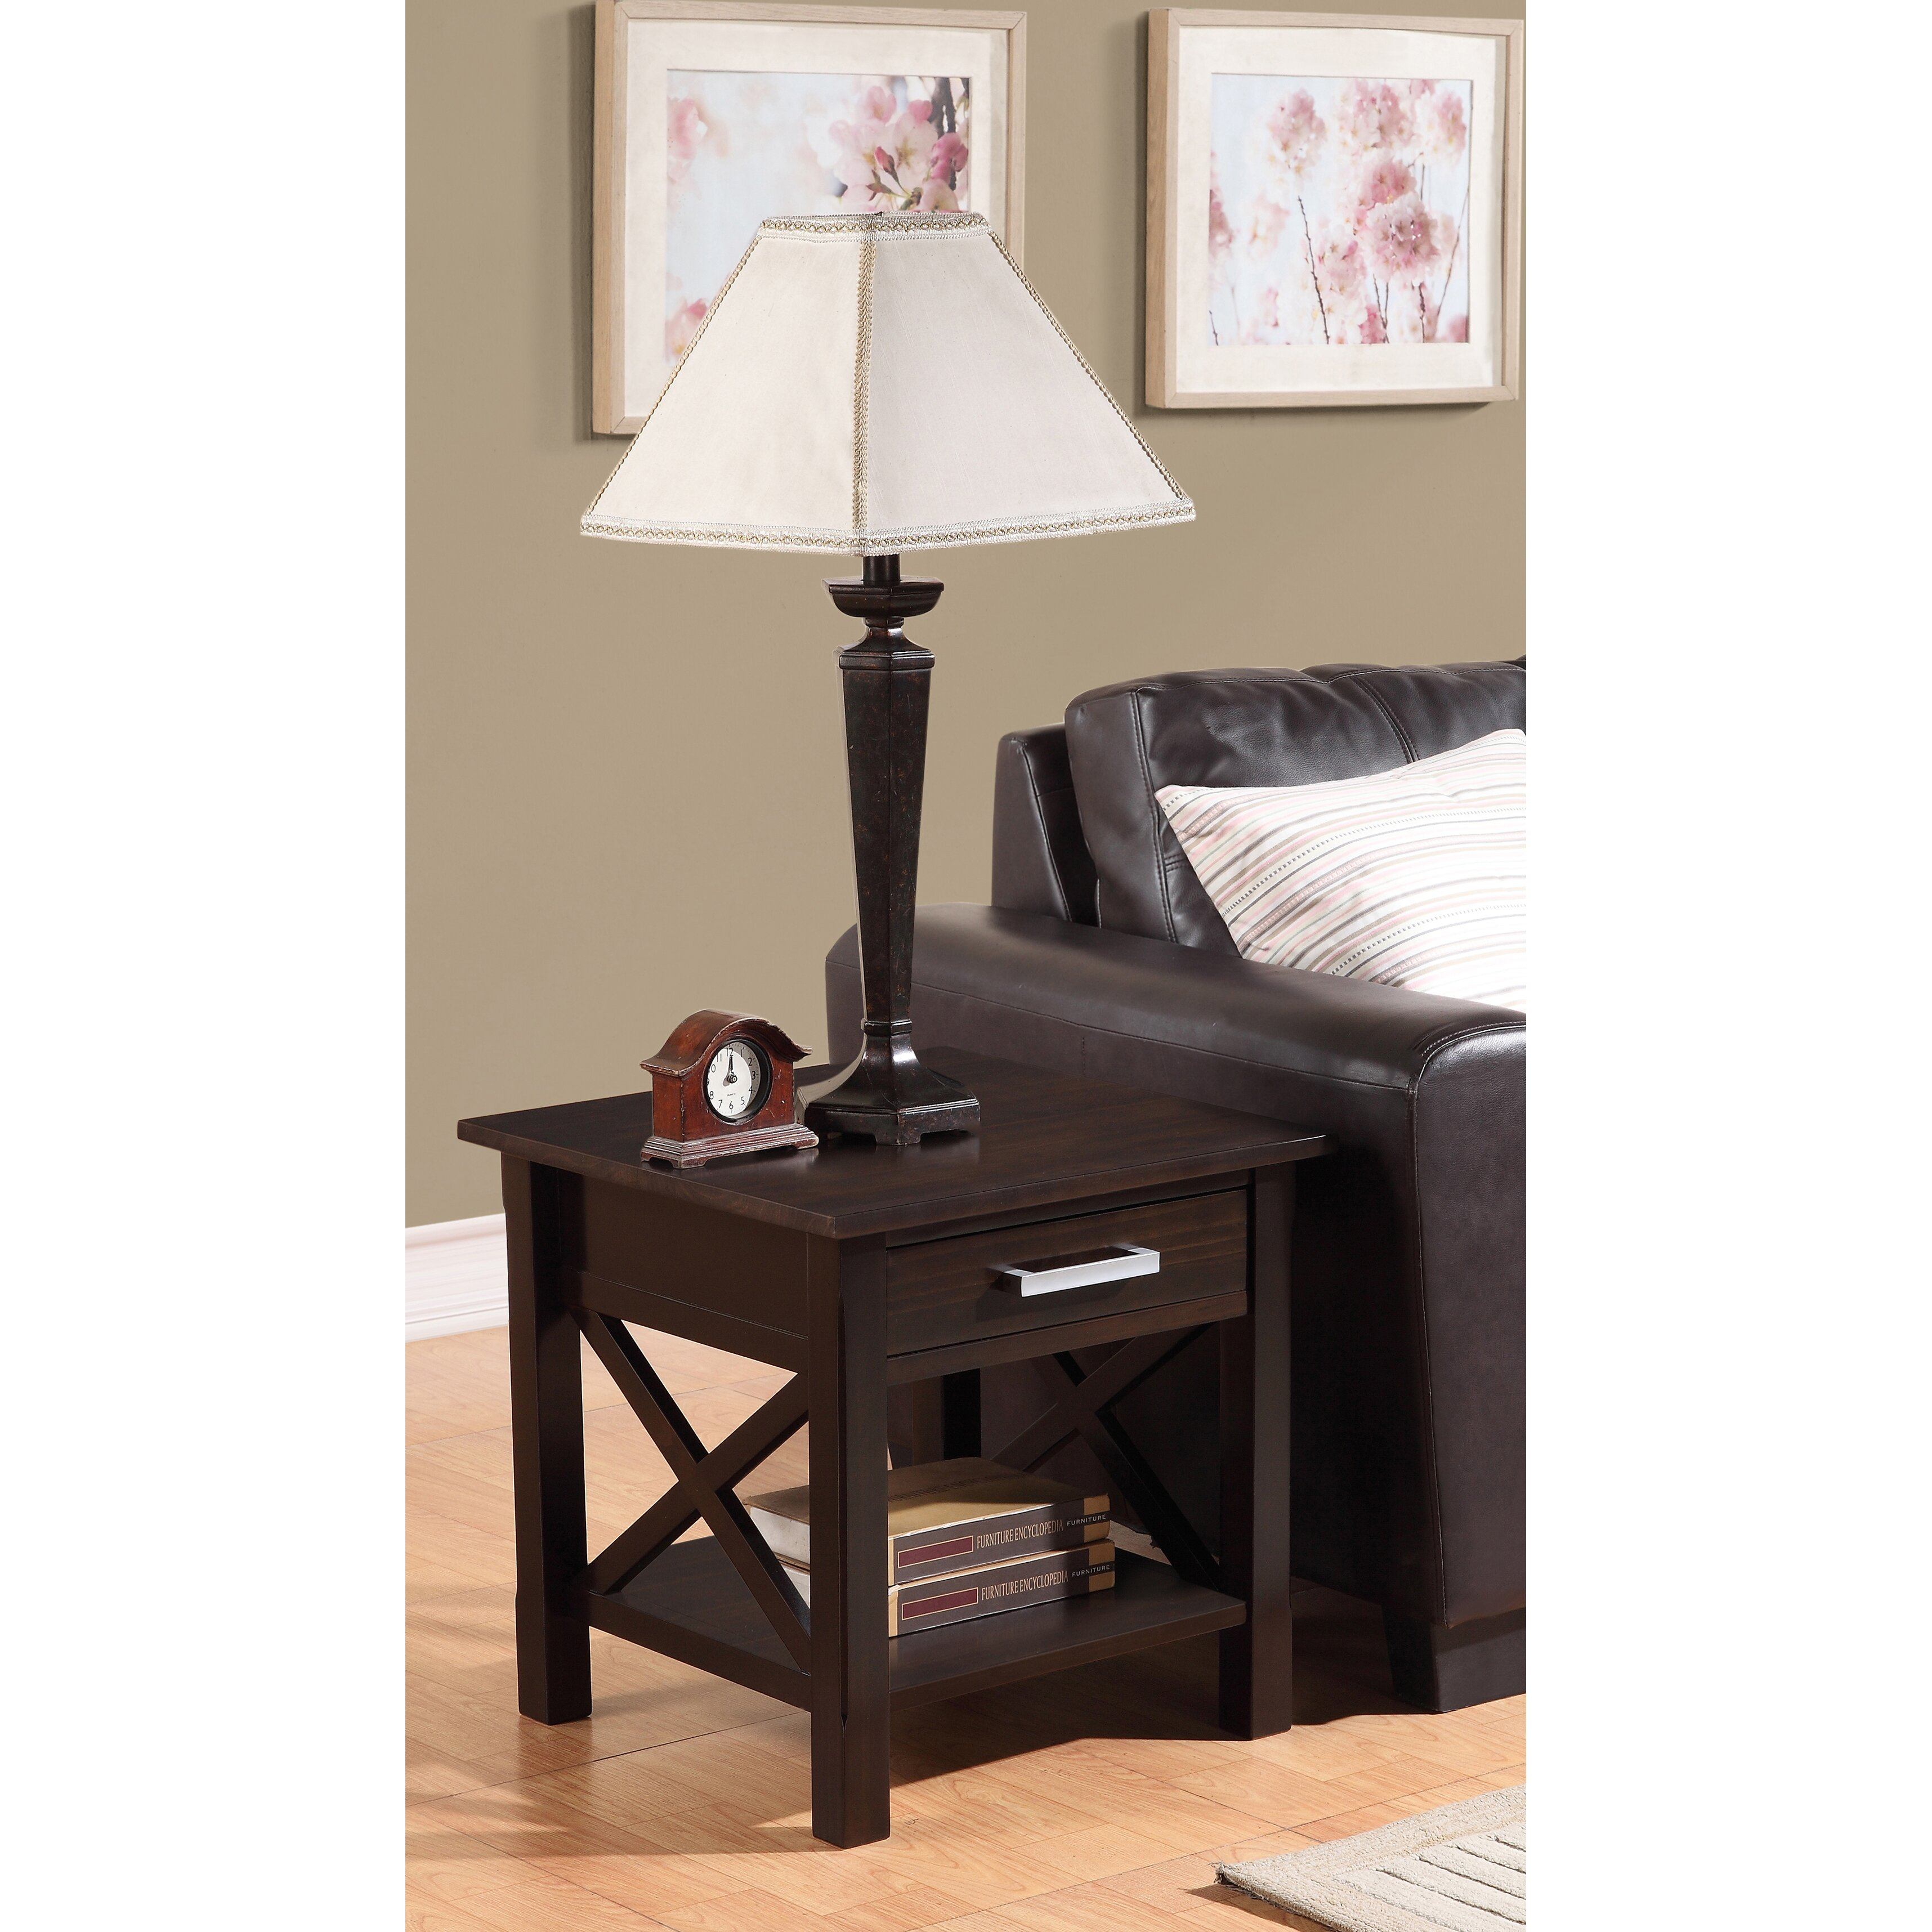 Home Decor And More Kitchener